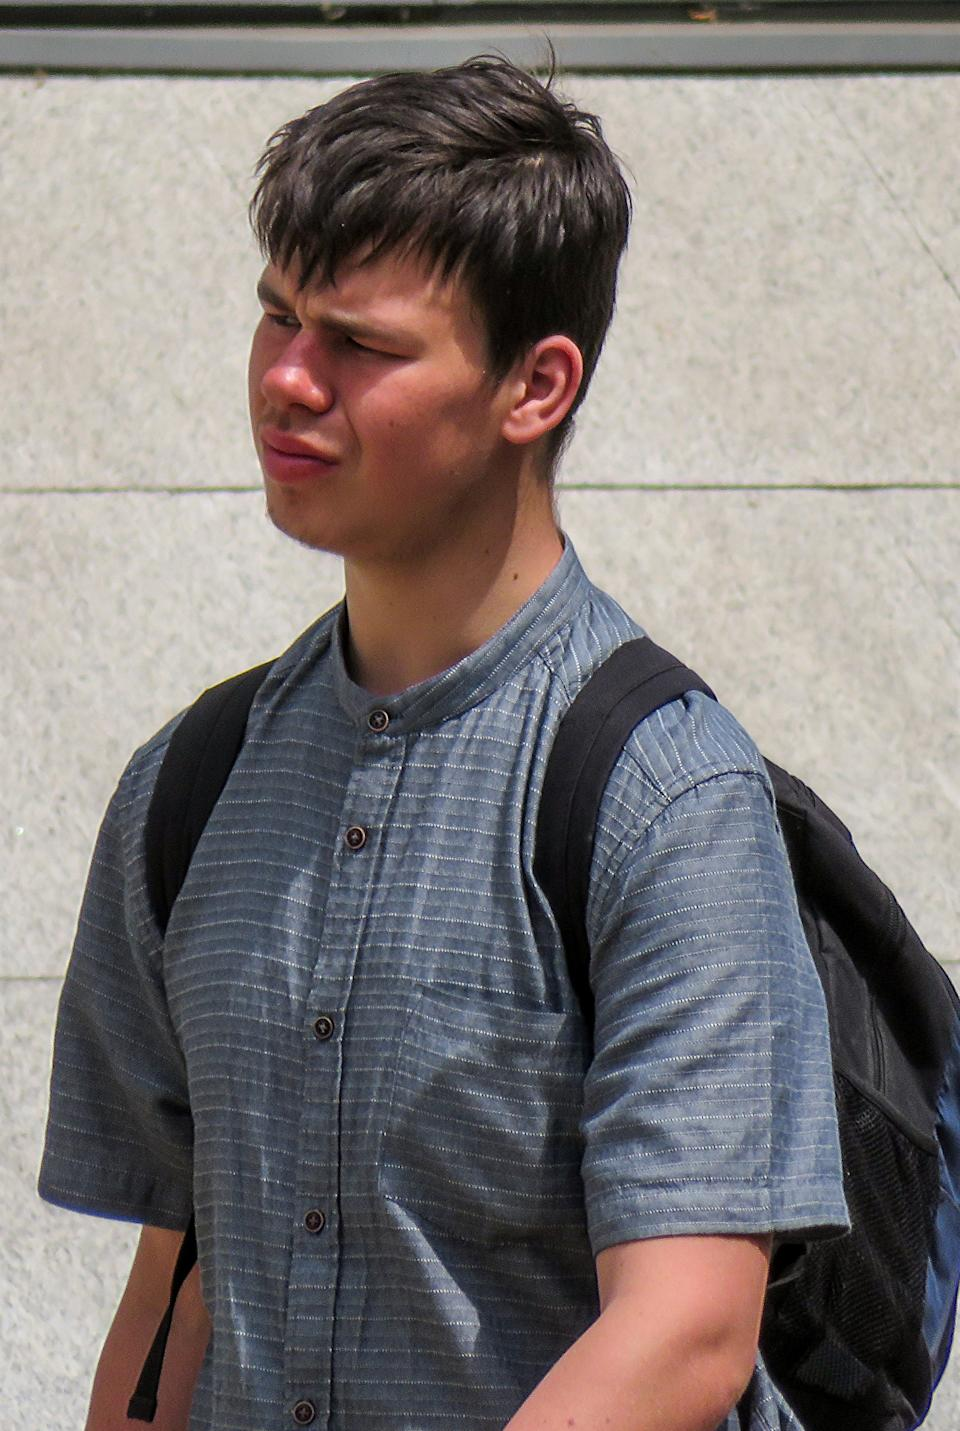 Karl Stott was given a 12-month suspended sentence at Warwick Crown Court. (Paul Beard/SWNS)